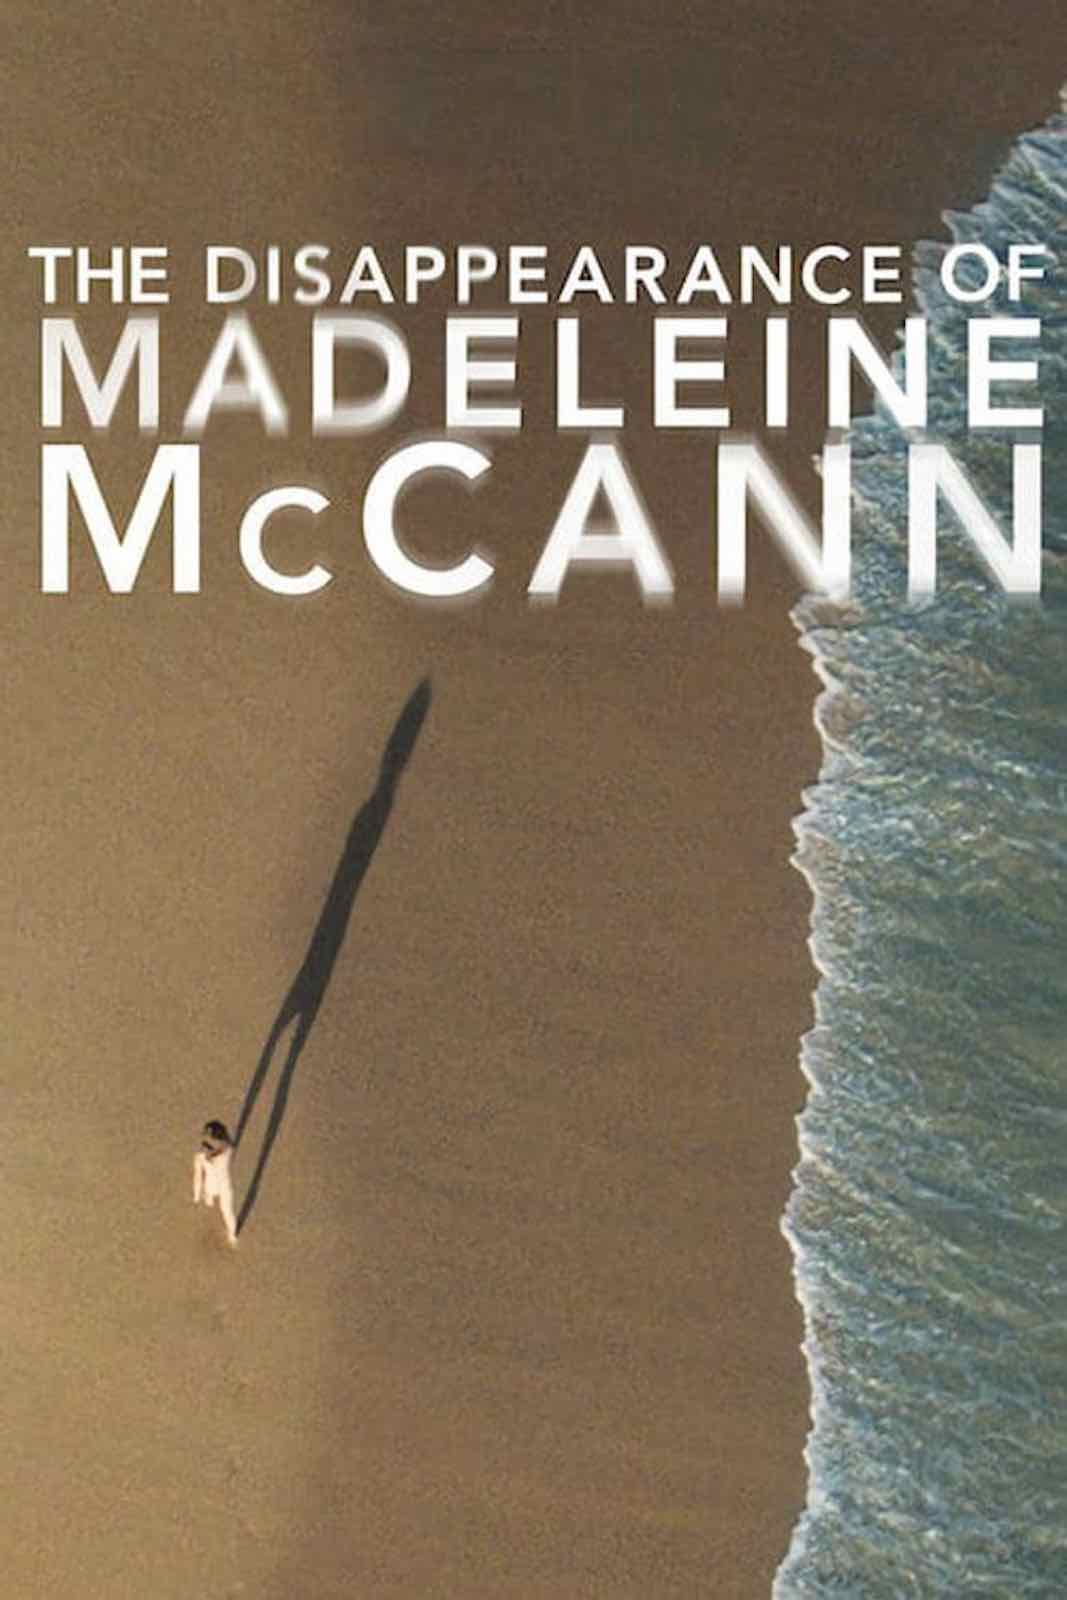 Netflix probes Madeleine McCann disappearance in new documentary - Page 15 The-Disappearance-of-Madeleine-McCann-4